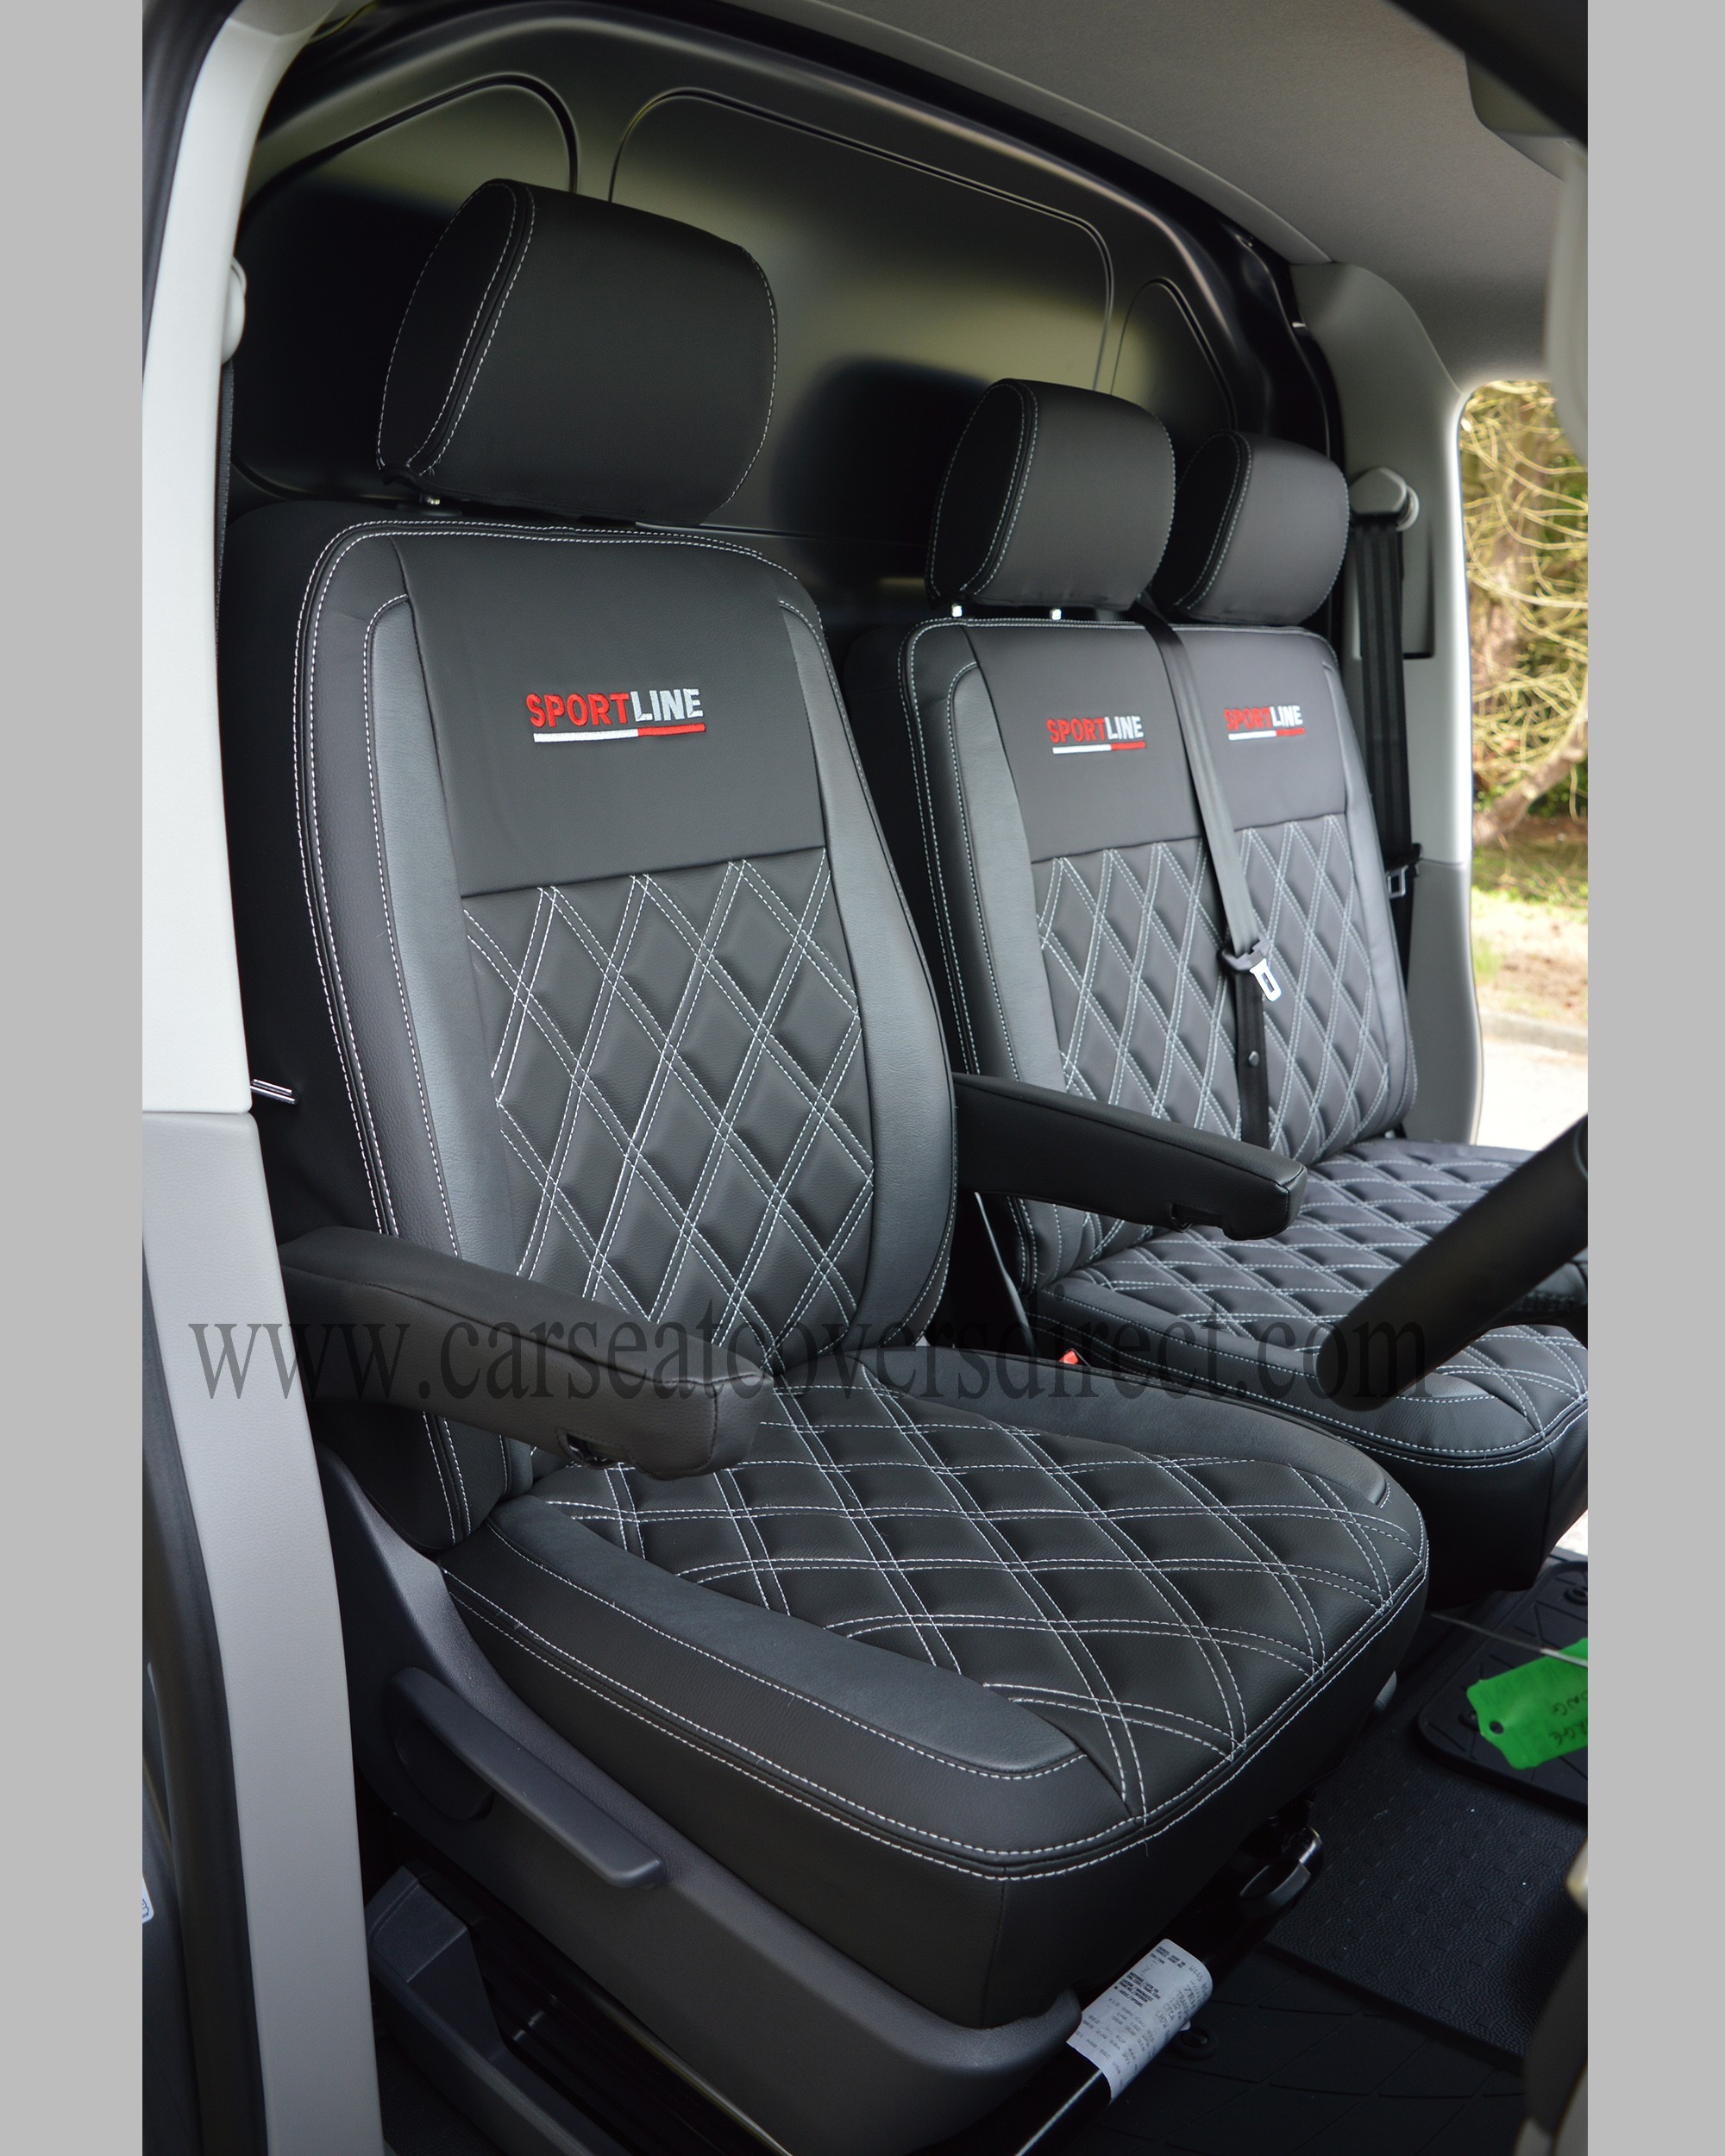 Vw Transporter T6 Genuine Fit Sportline Van Seat Covers